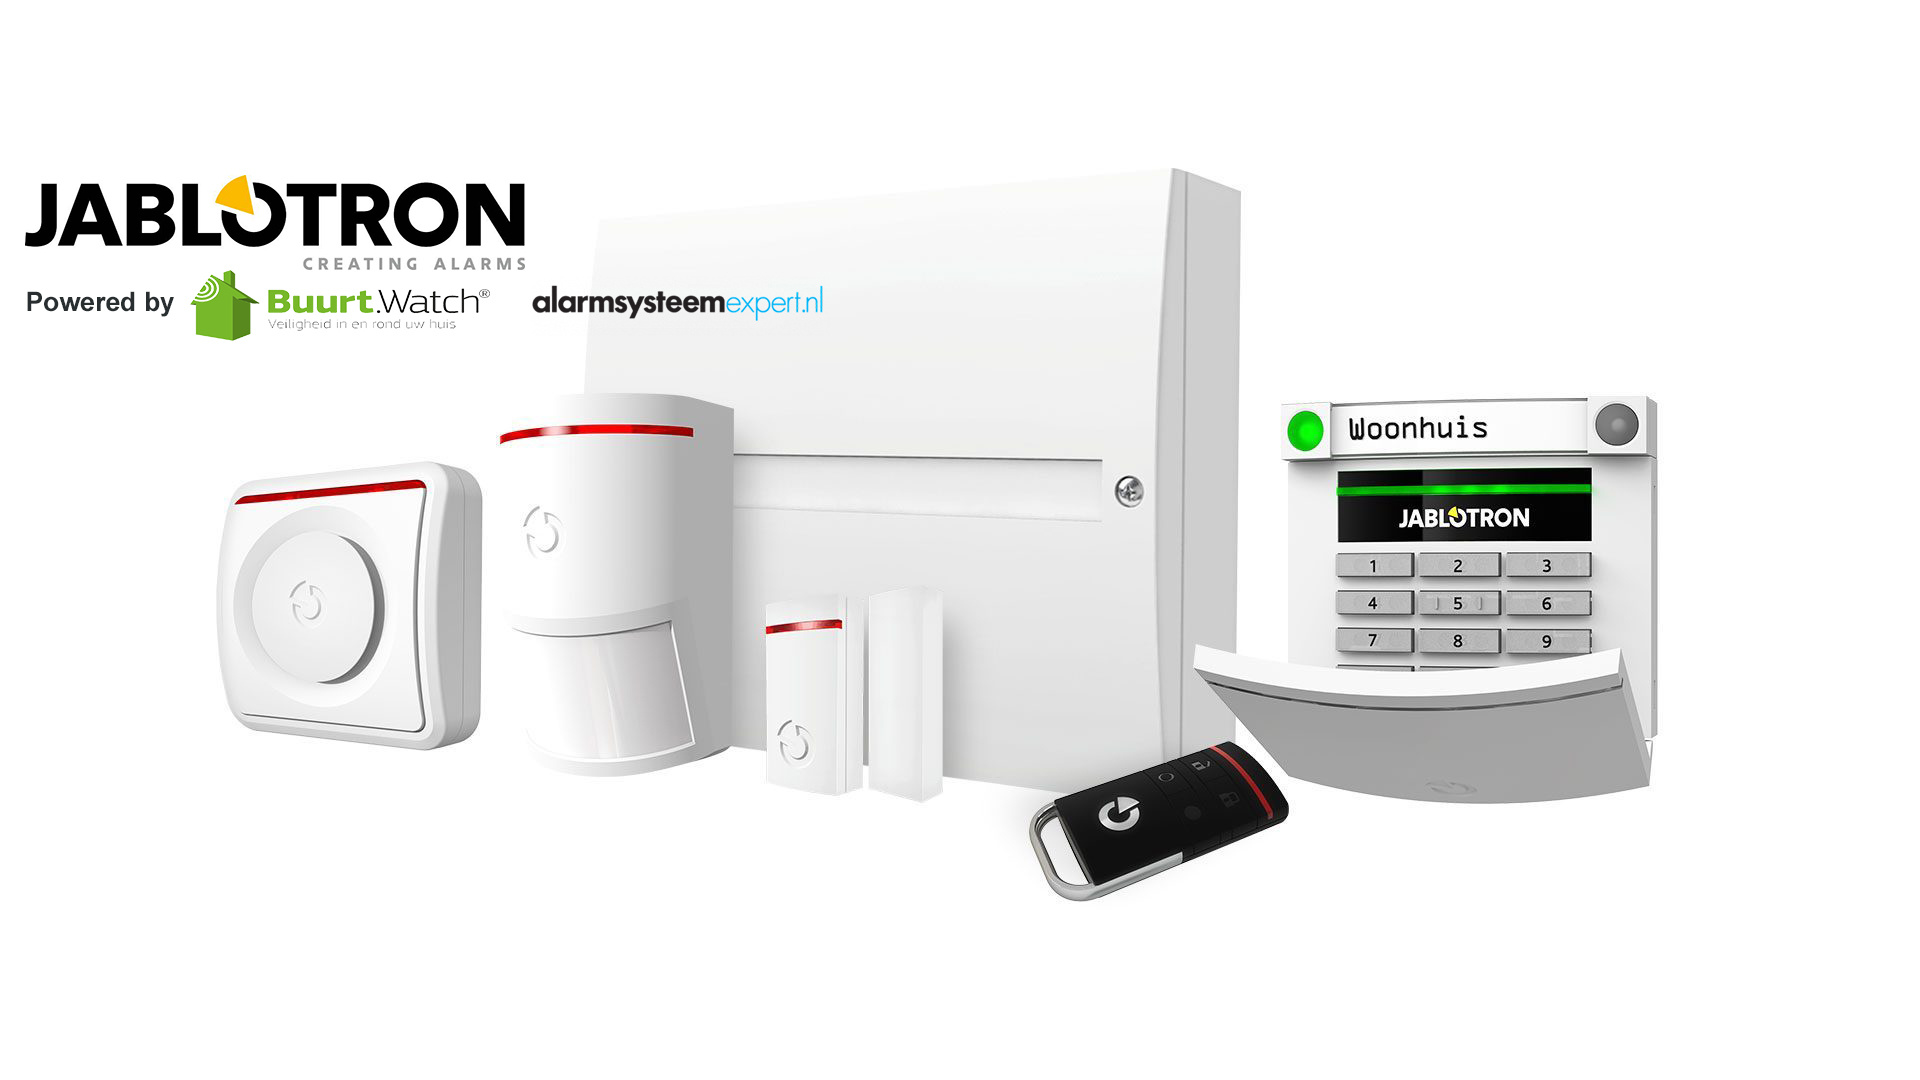 Extensive basic kit for easy security. This kit consists of: 1 x JA-101KR-LAN / GSM control panel 1 x JA-150P motion detector 1 x JA-151M mini magnetic contact 1 x JA-110A indoor siren 1 x JA-153E code control panel 1 x JA-154J MS remote control 1 x batte